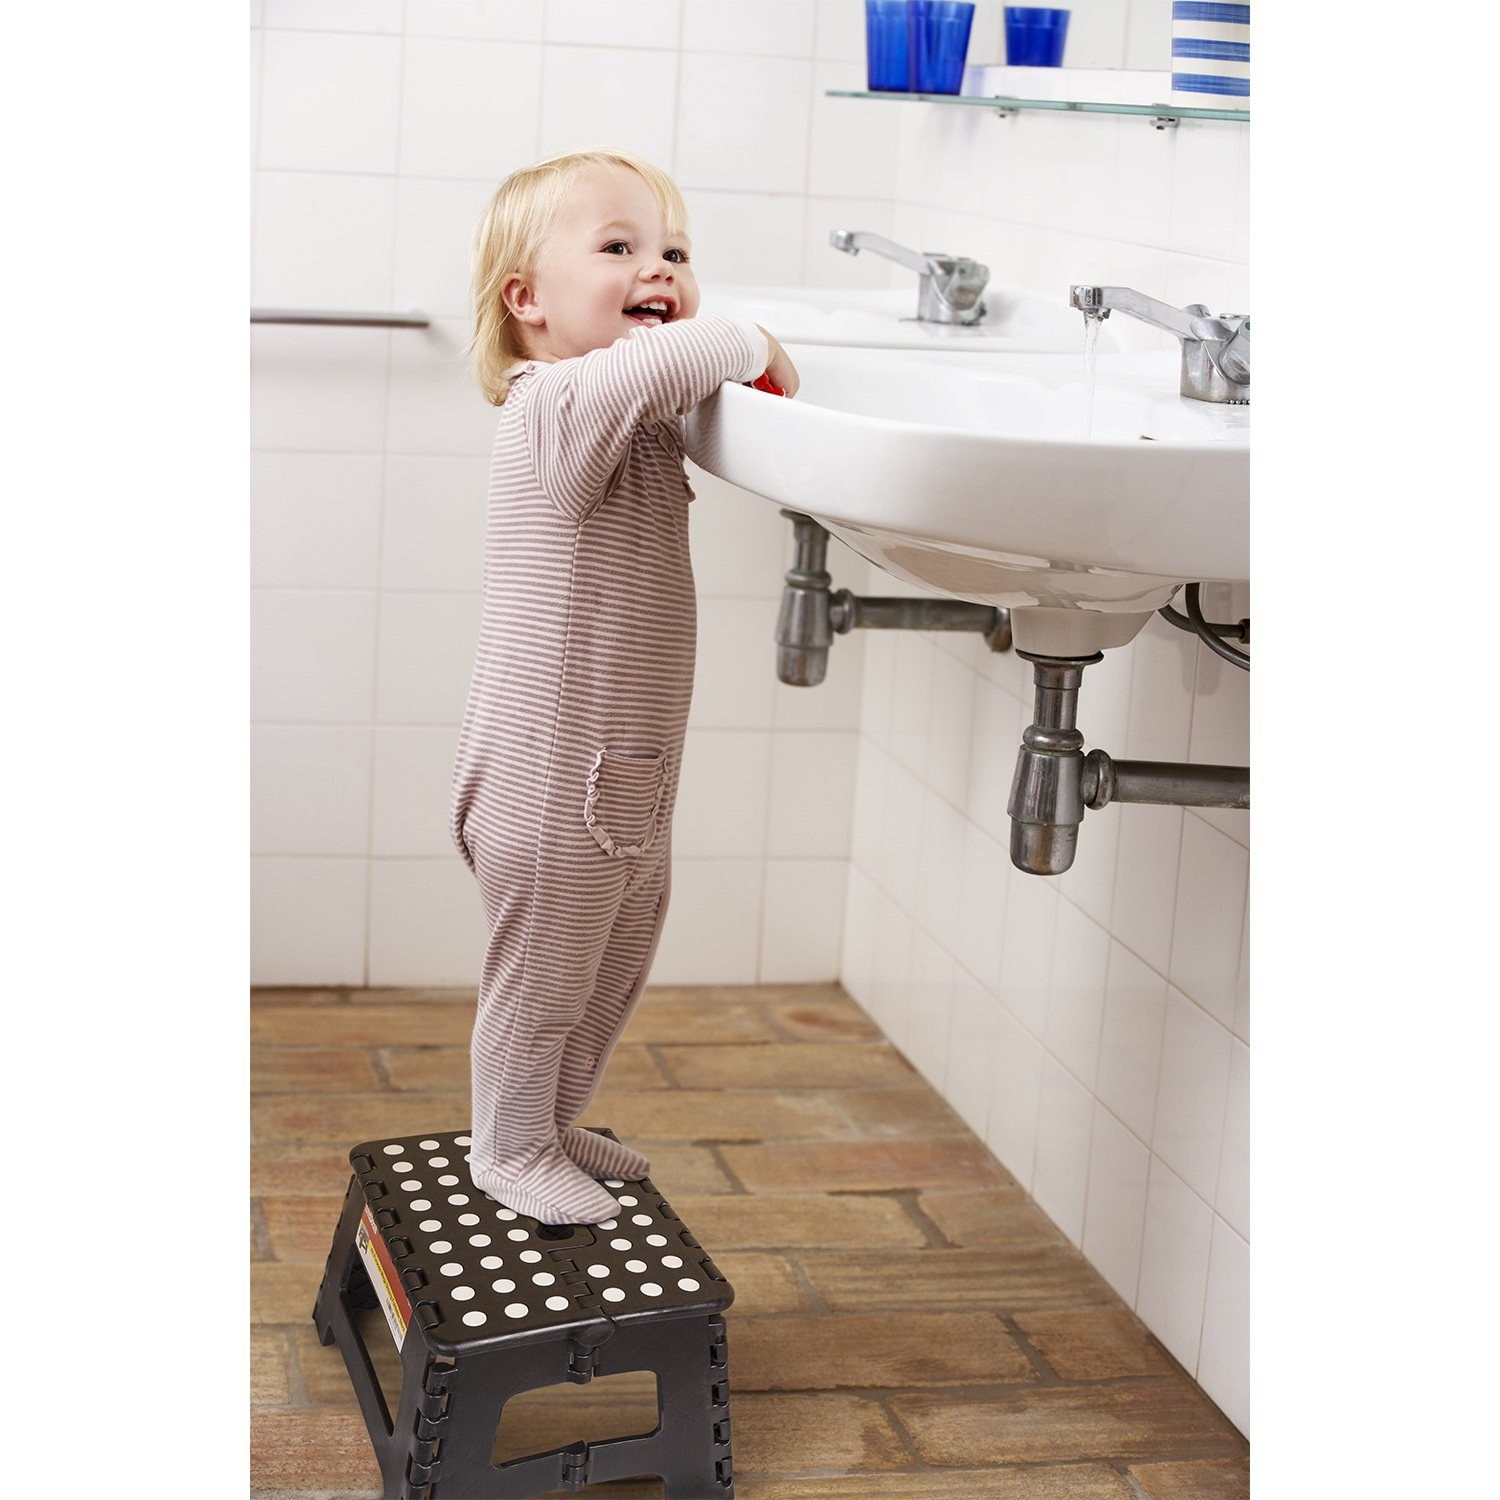 Amazon.com Folding Step Stool - 9 inch Height Premium Heavy Duty Foldable Stool For Kids u0026 Adults Kitchen Garden Bathroom Stepping Stool From ImiKas Baby  sc 1 st  Amazon.com & Amazon.com: Folding Step Stool - 9 inch Height Premium Heavy Duty ... islam-shia.org